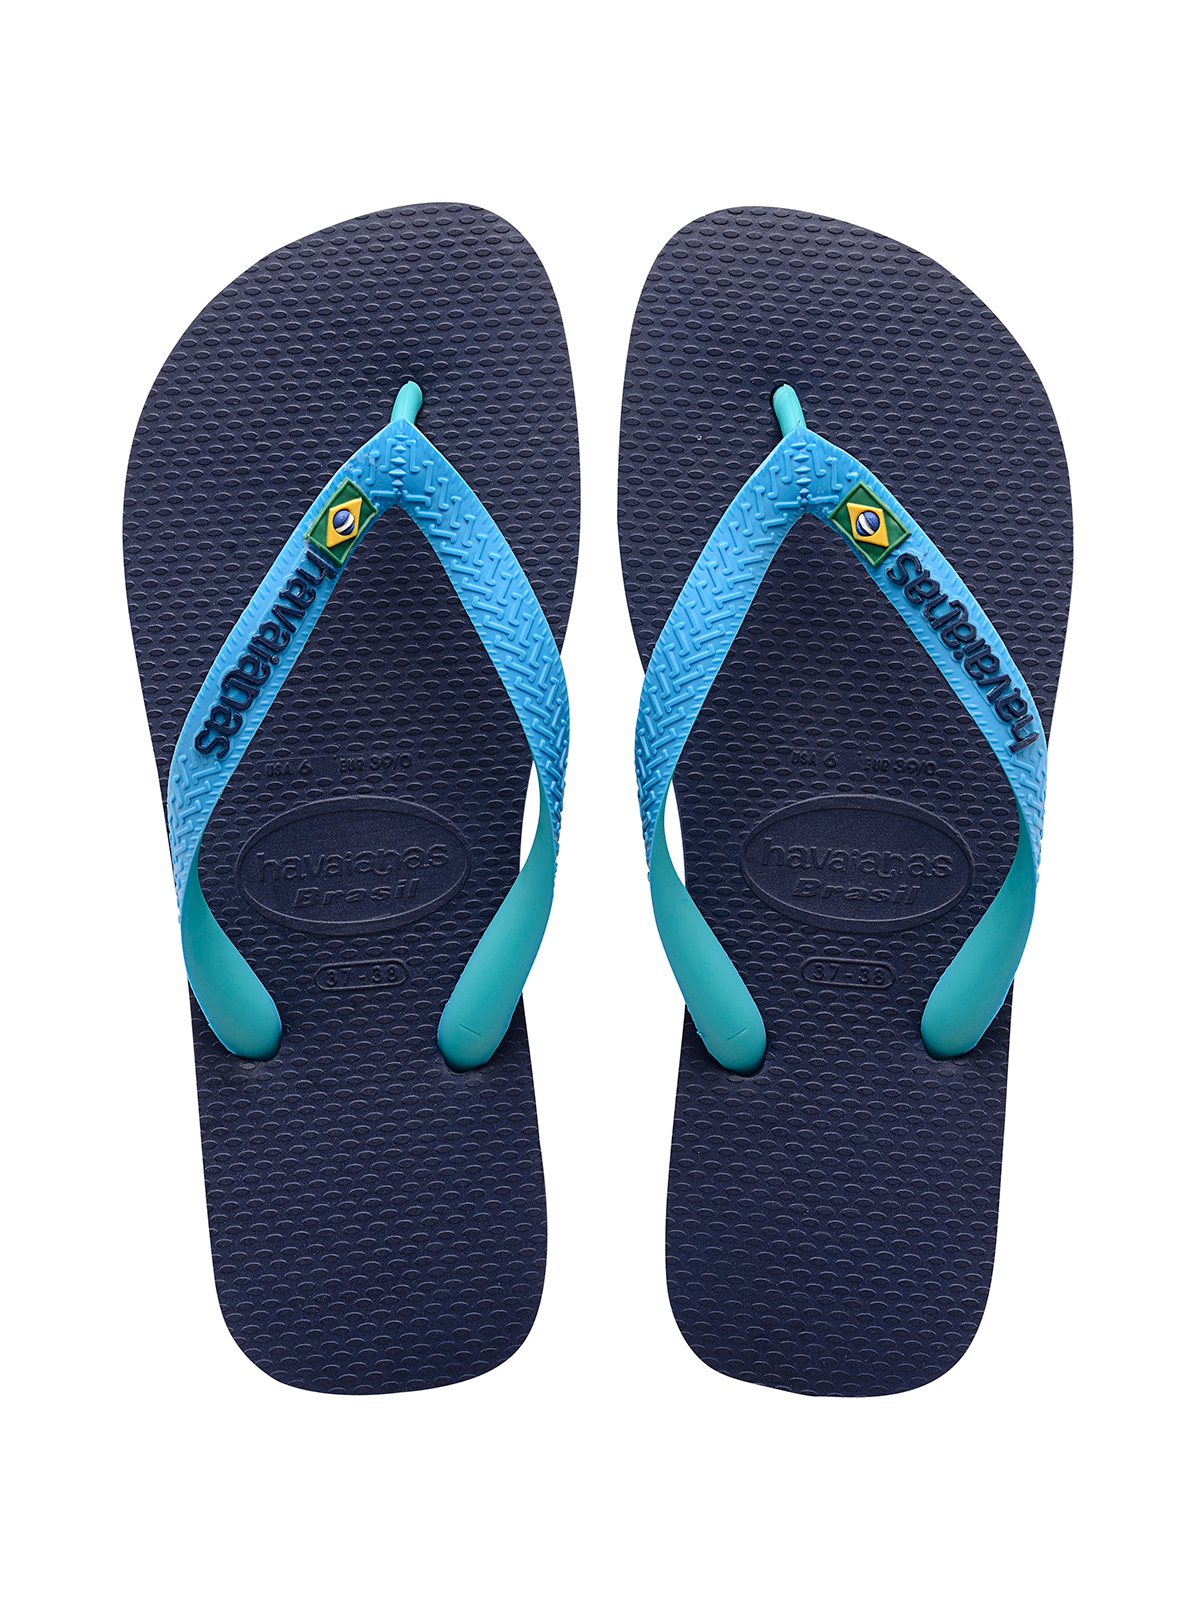 d86483997557 ... Two-toned flip flops featuring a navy blue footbed and turquoise straps  - Brasil Mix ...